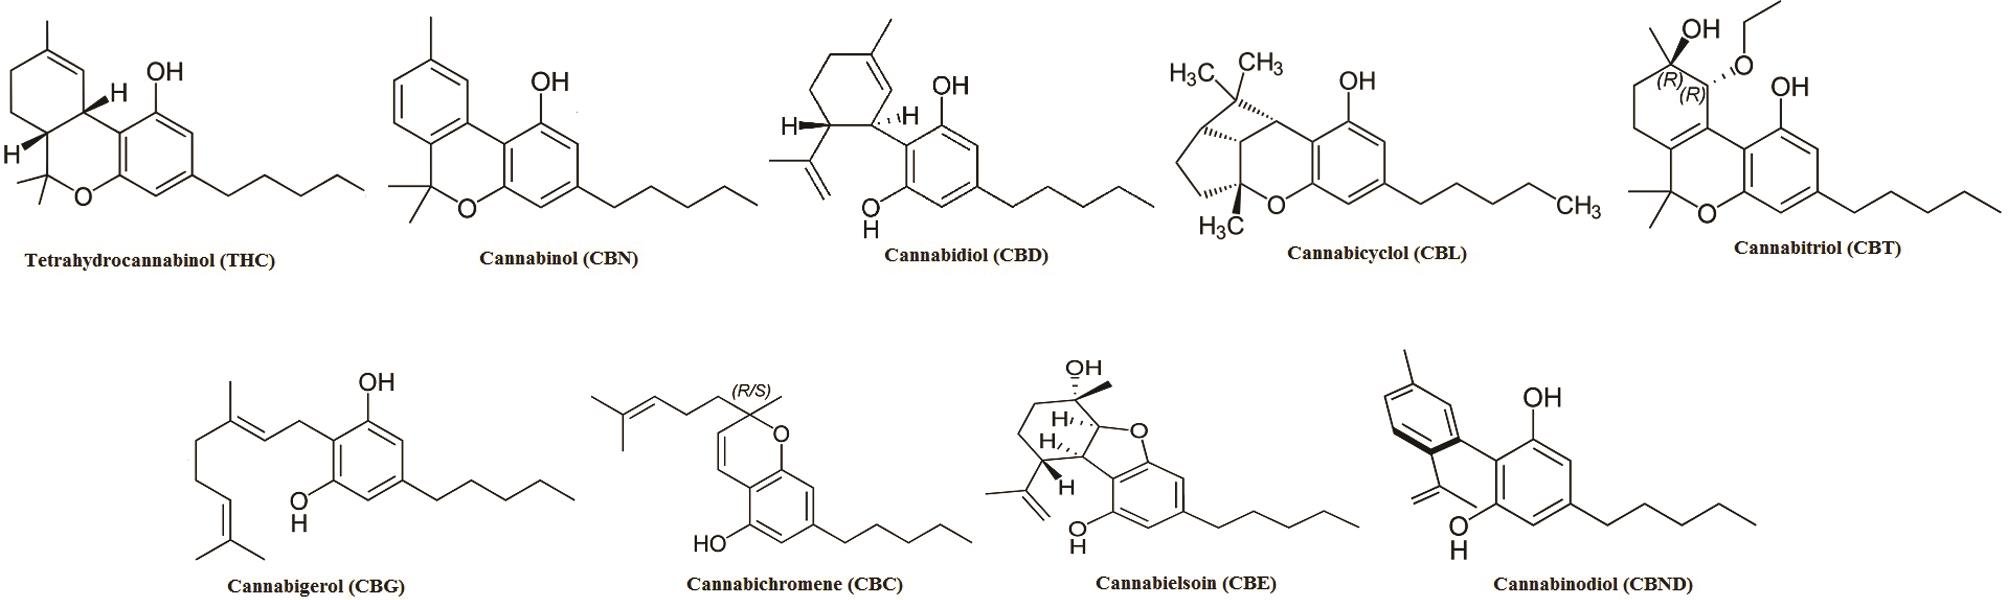 Structures of various cannabinoids isolated from <italic>C. sativa</italic> and their derivatives.